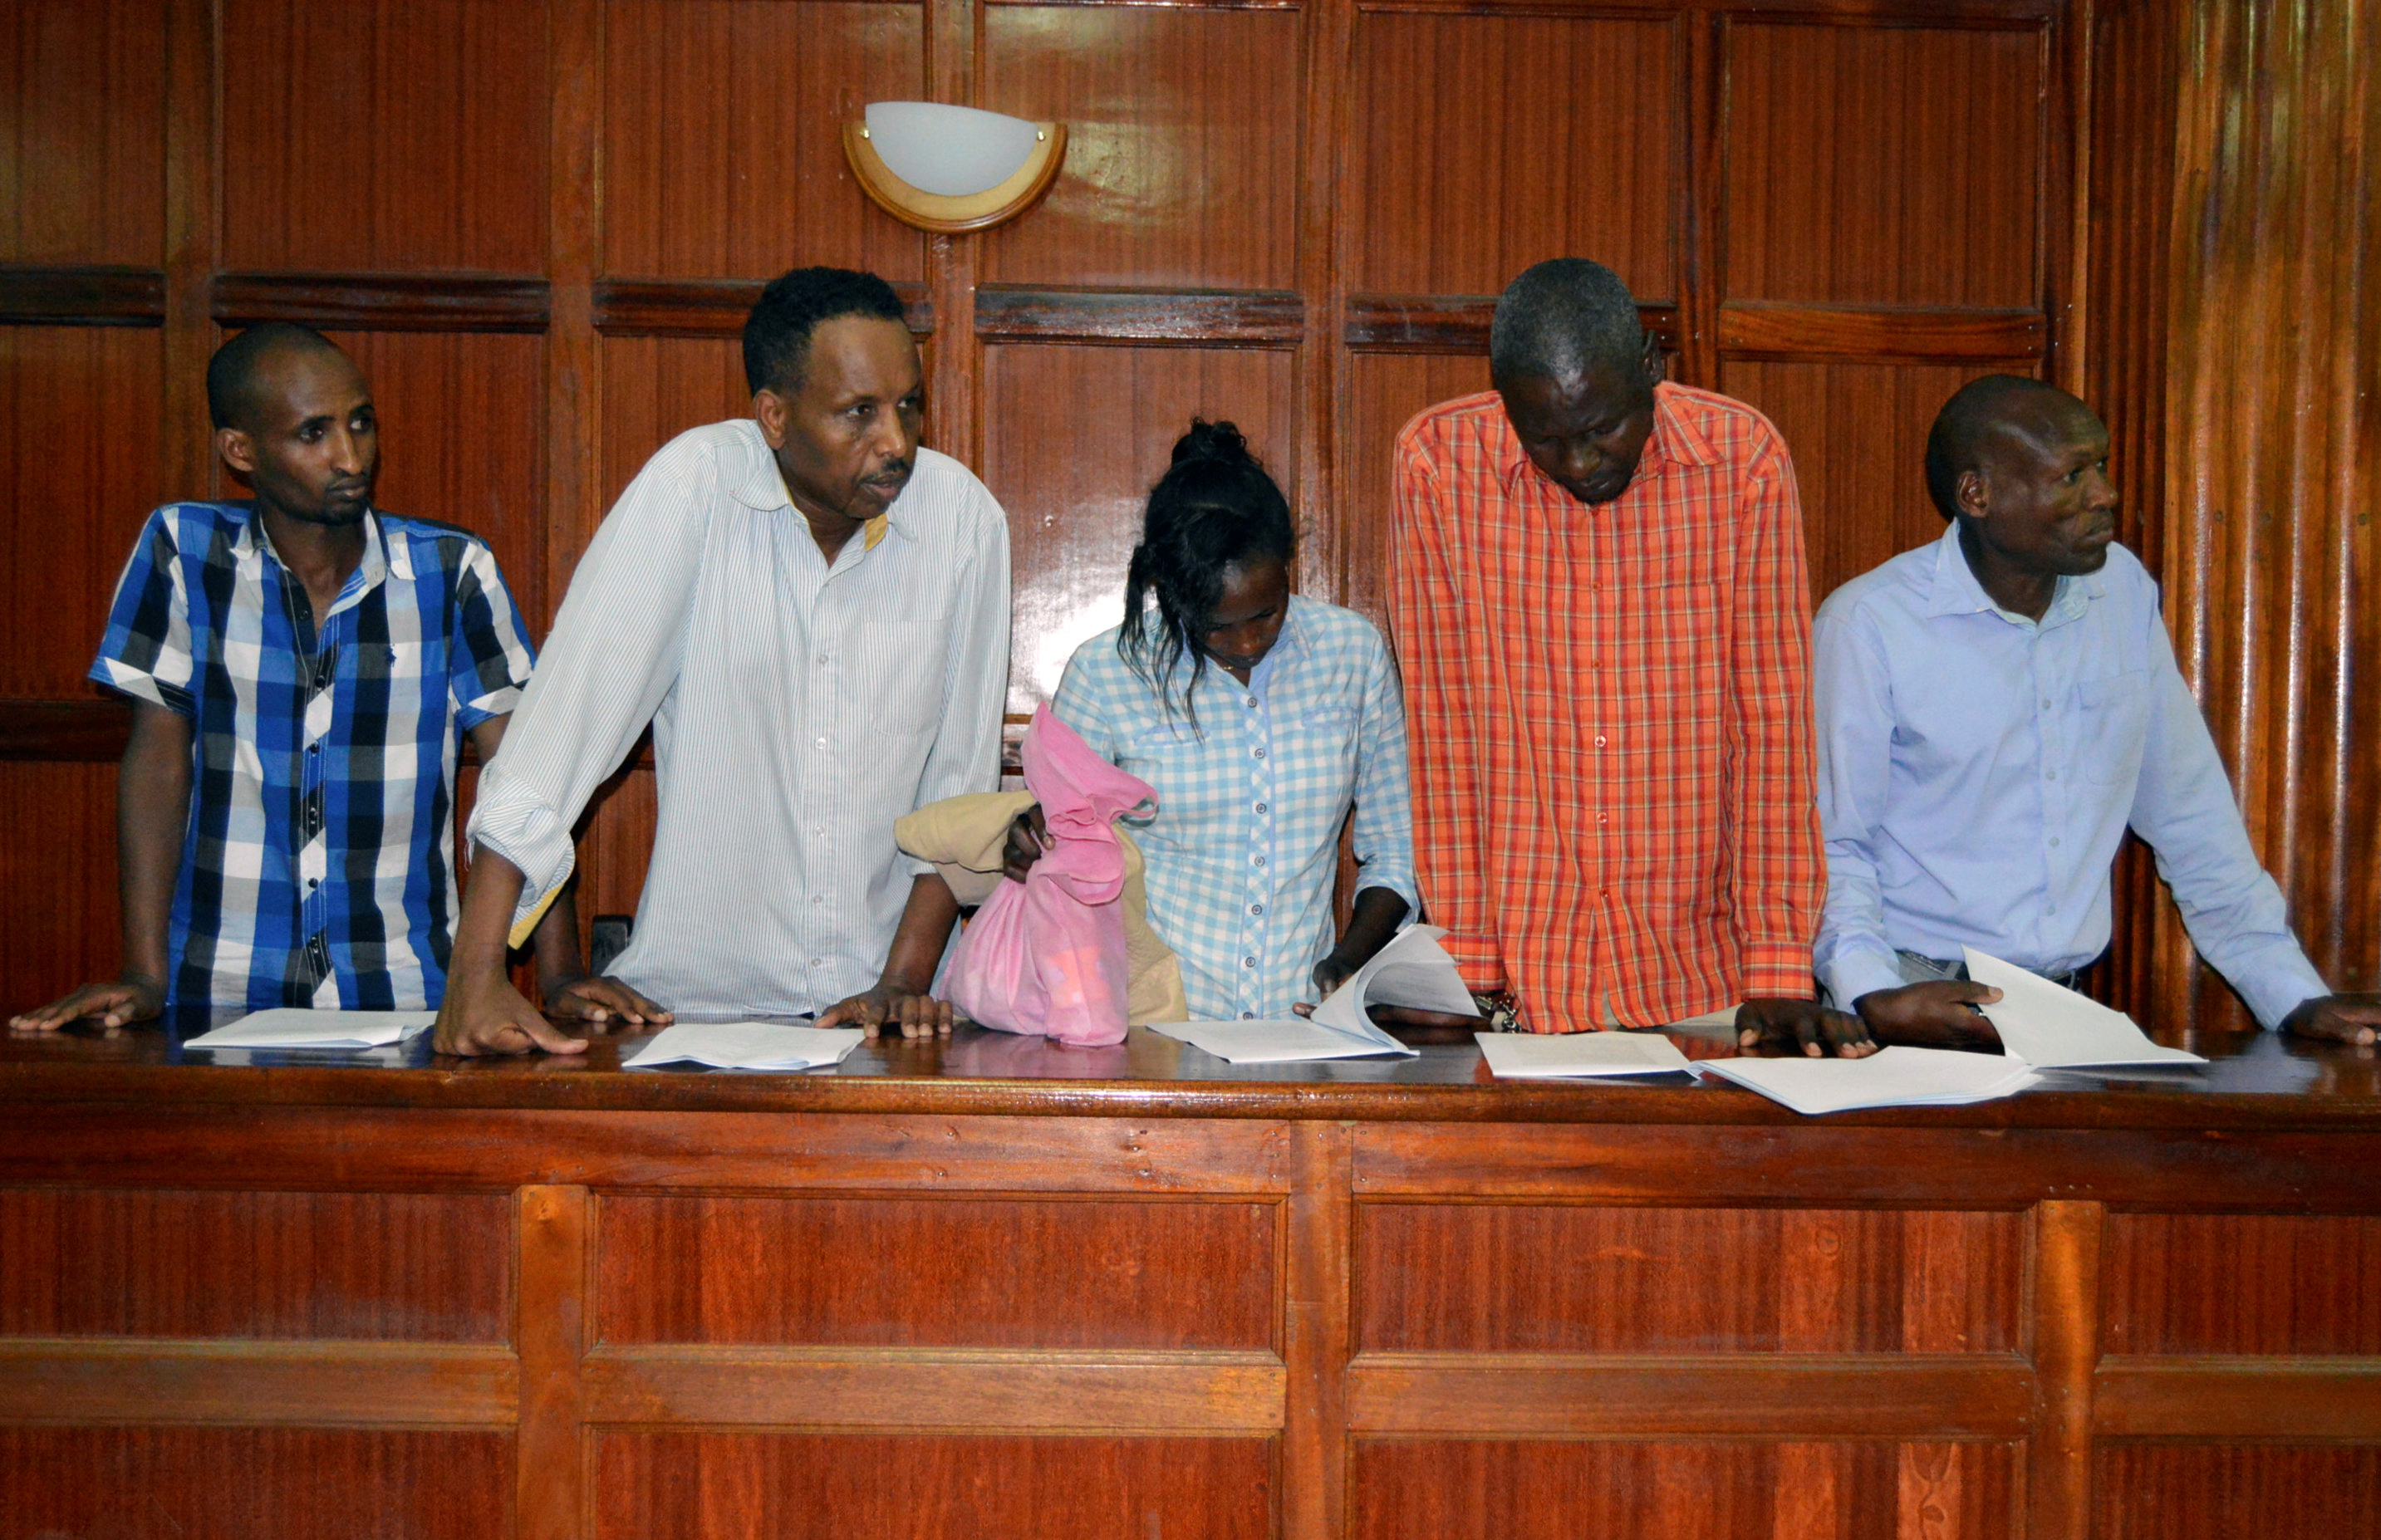 Suspects, left to right, Osman Ibrahim, Oliver Muthee, Gladys Kaari, Guled Abdihakim and Joel Nganga stand in the dock inside the Mililani Law Courts where they appeared in connection with the attack at the DusitD2 complex, in Nairobi, Kenya, Jan. 18...